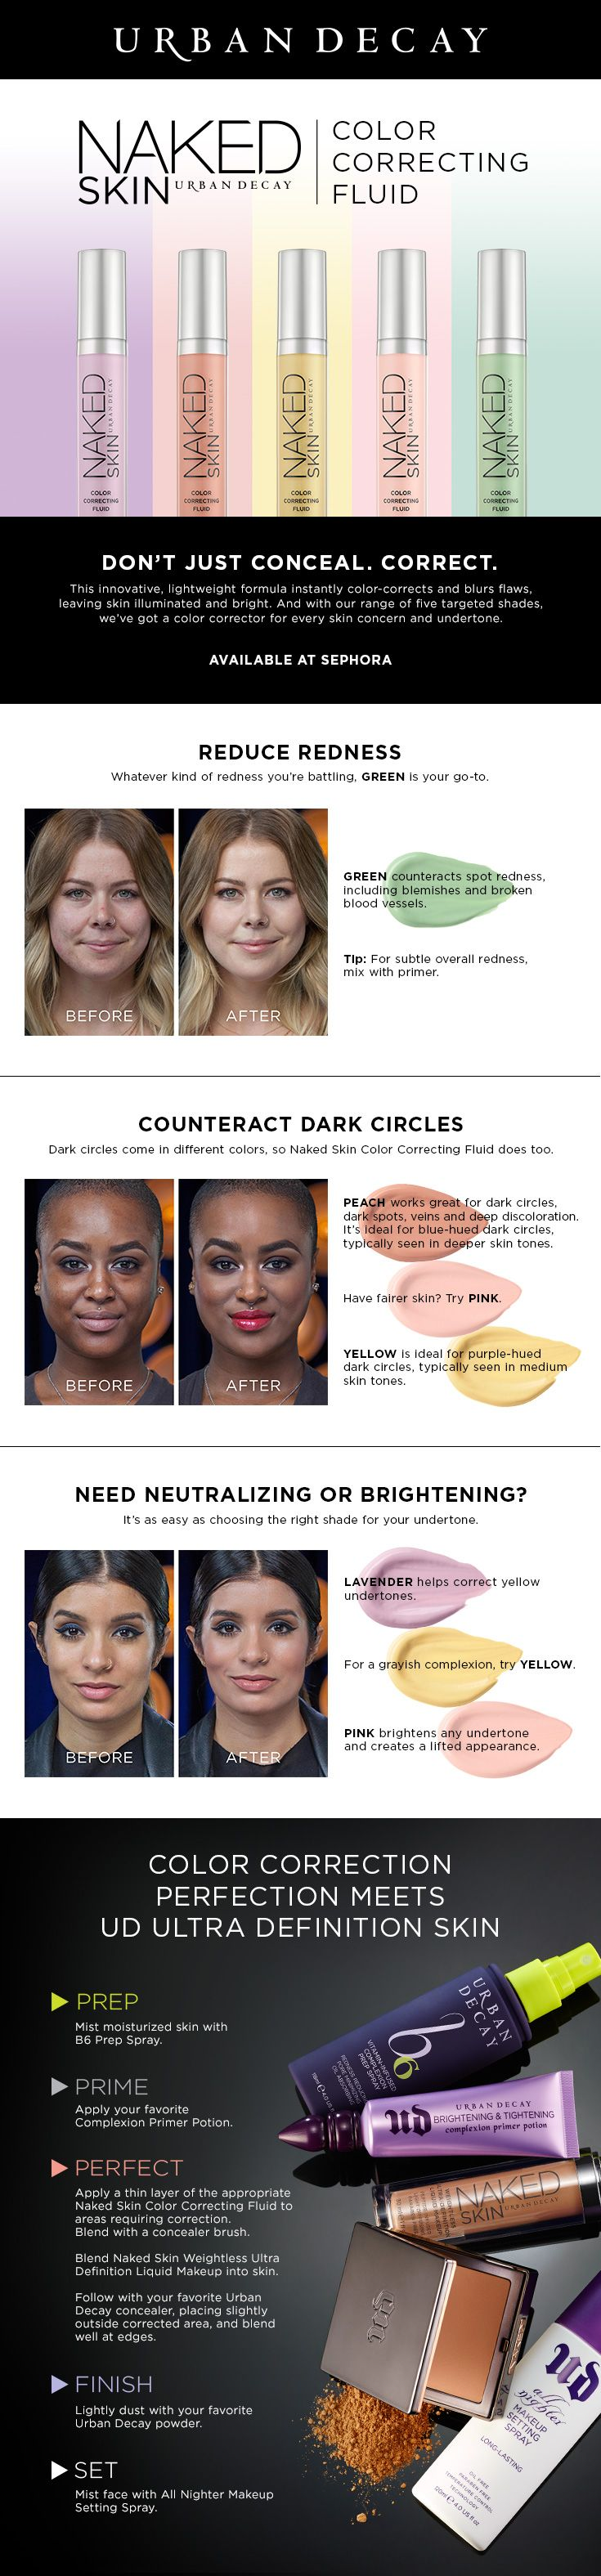 Makeup beauty and more jane cosmetics multi colored color correcting - Urban Decay Naked Skin Color Correcting Fluid Correct Imperfections And Play Up Your Best Features